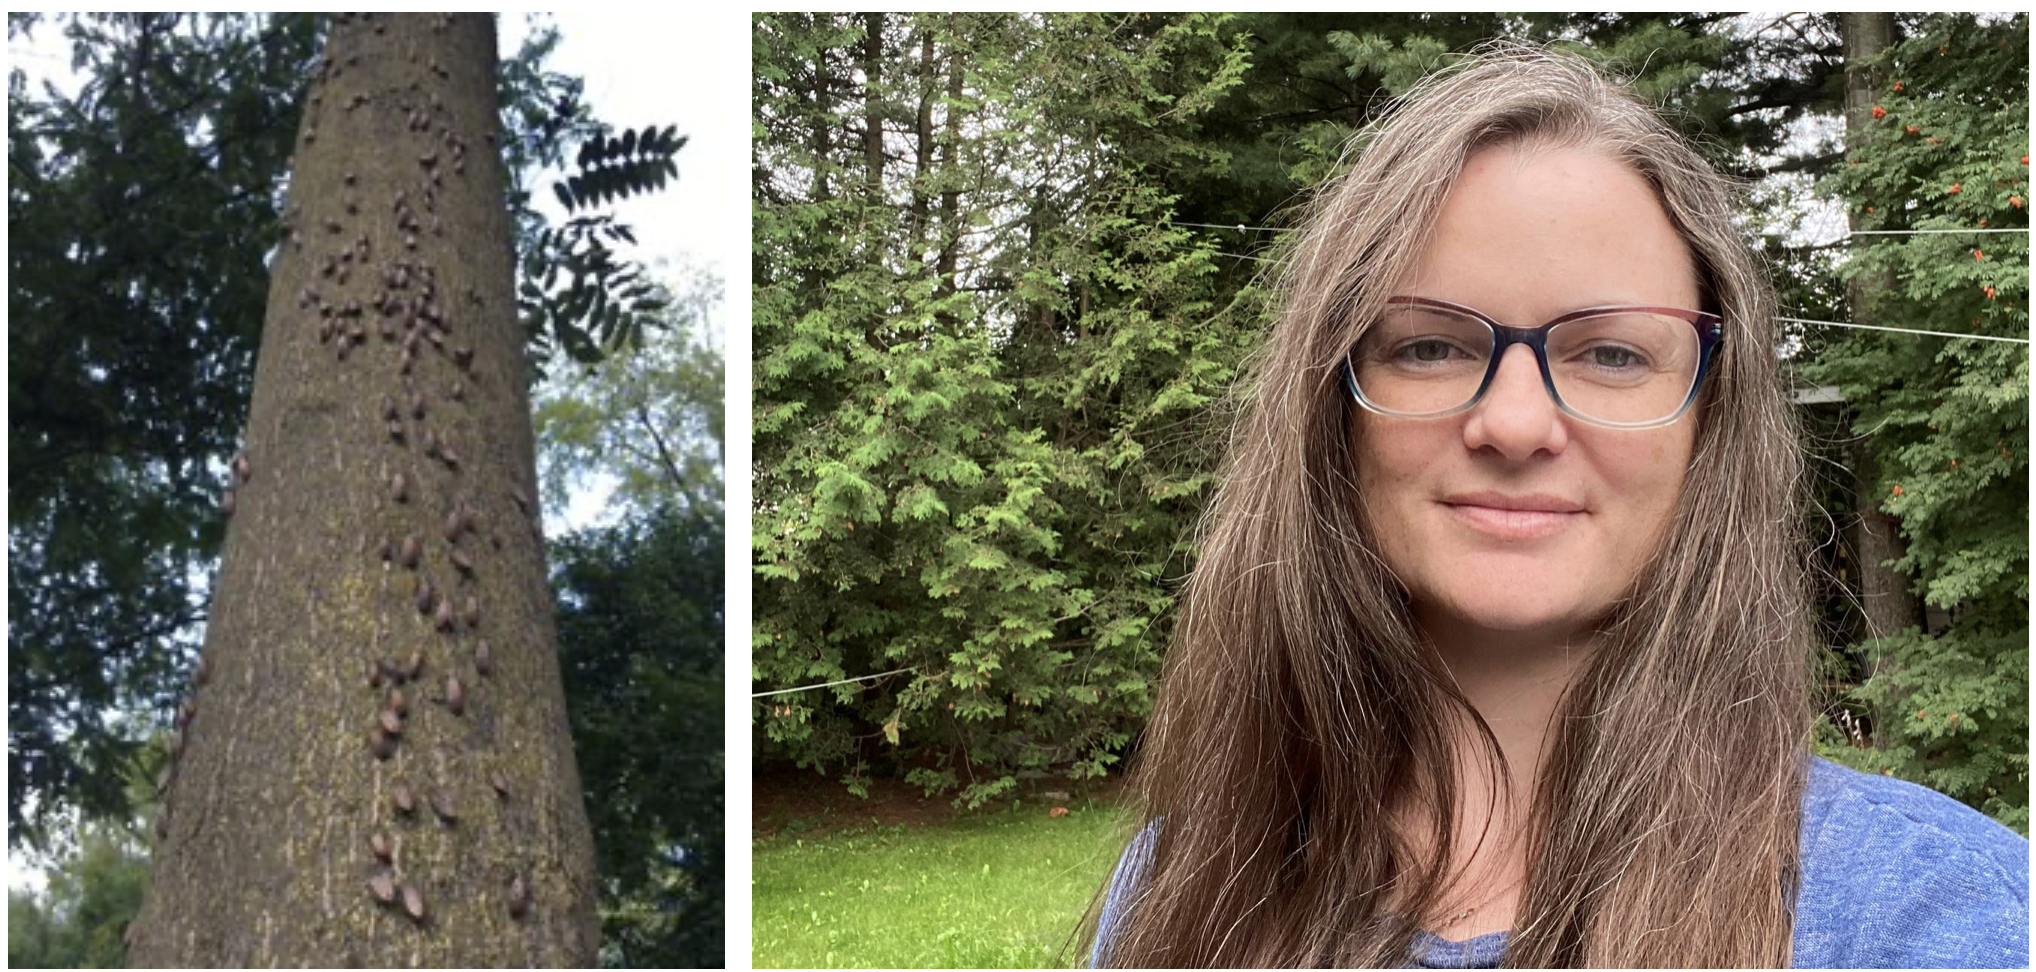 left: bugs on a tree trunk; right: a woman with long hair and glasses